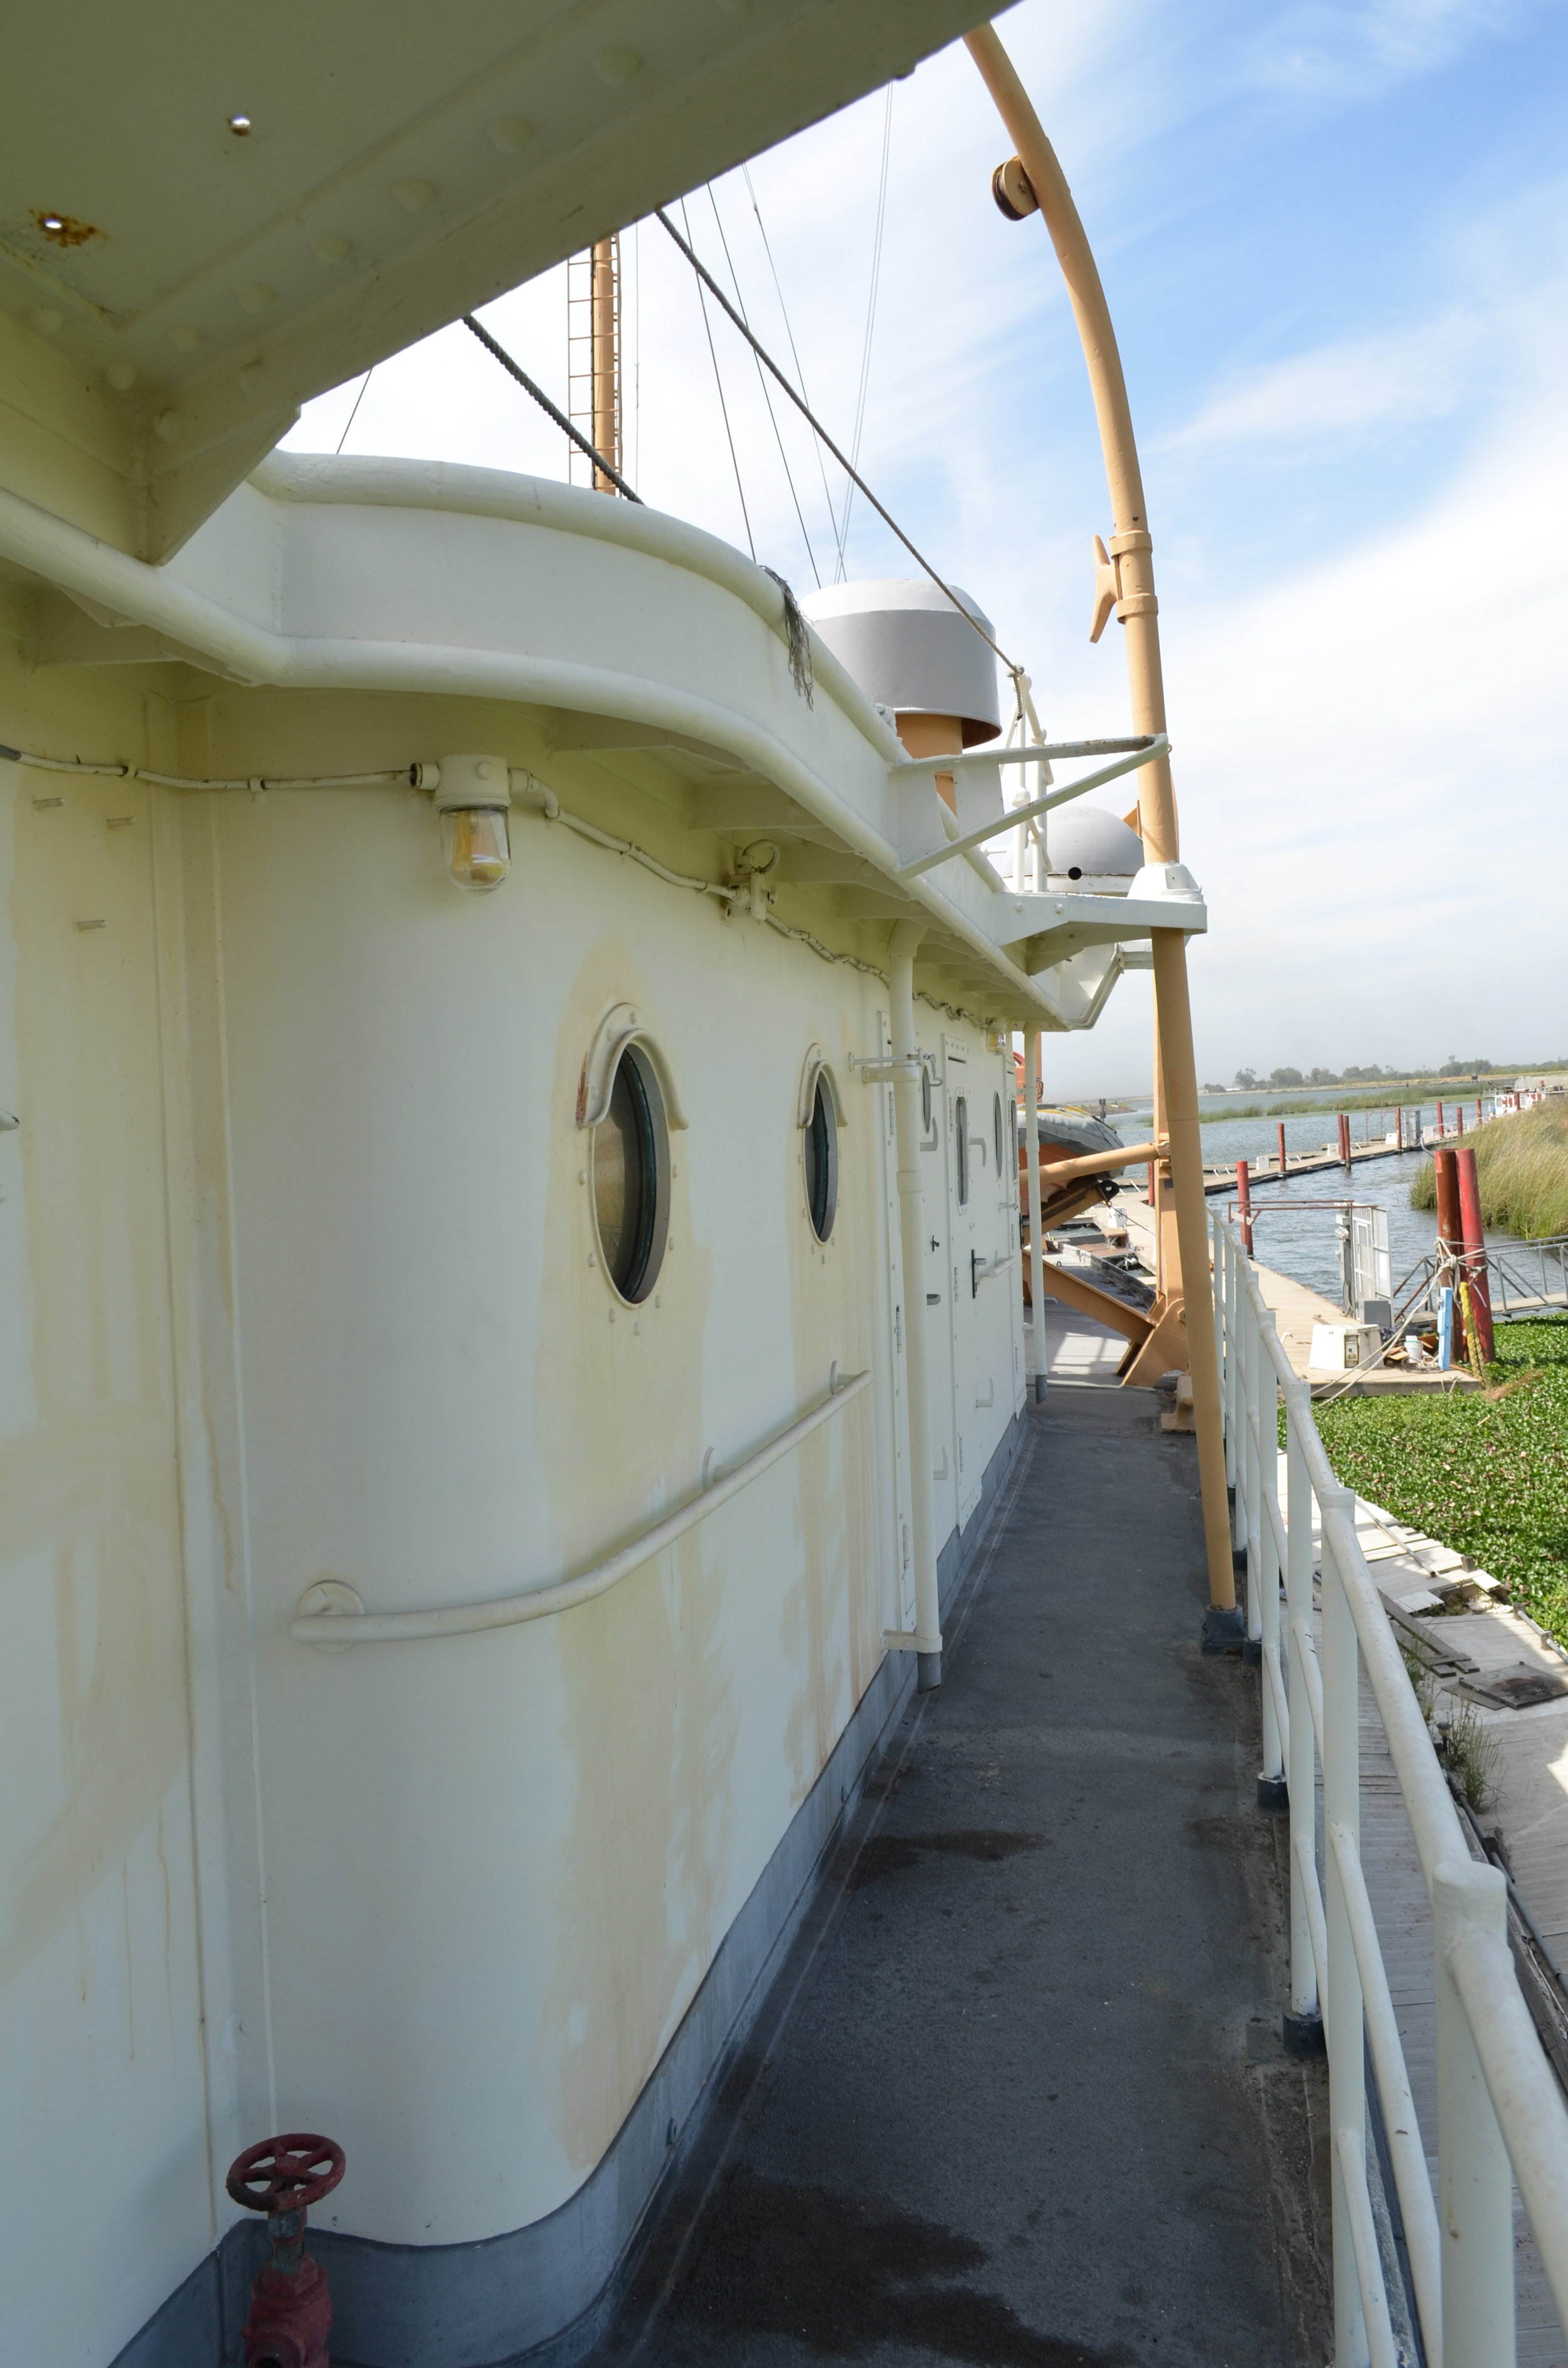 Starboard passage on the 02 deck. Looking aft. Spring 2017. Doors lead to individual staterooms.